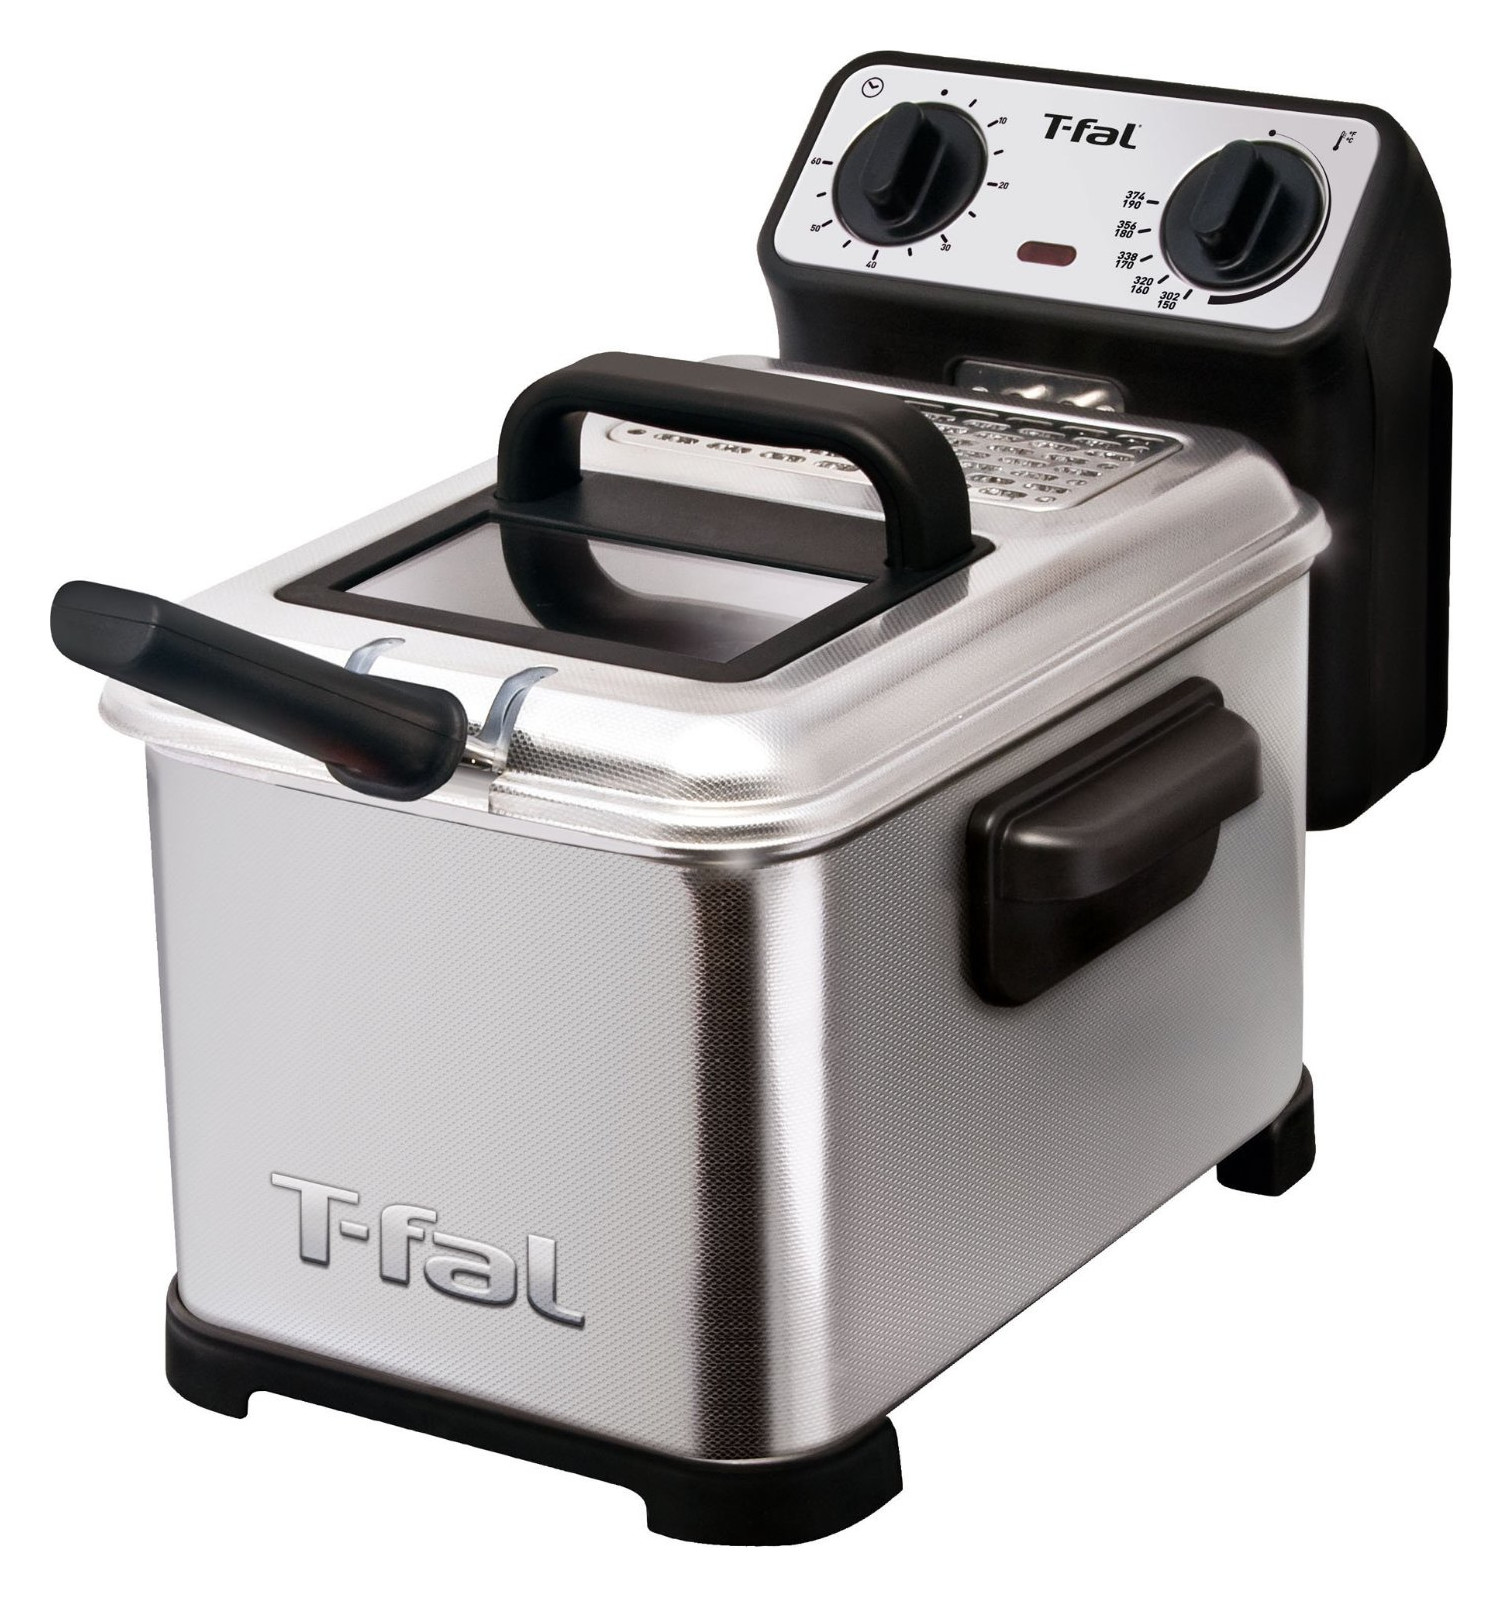 T-fal, FR4049001, Family Pro 3.3-Liter Deep Fryer, Stainless Steel, Silver